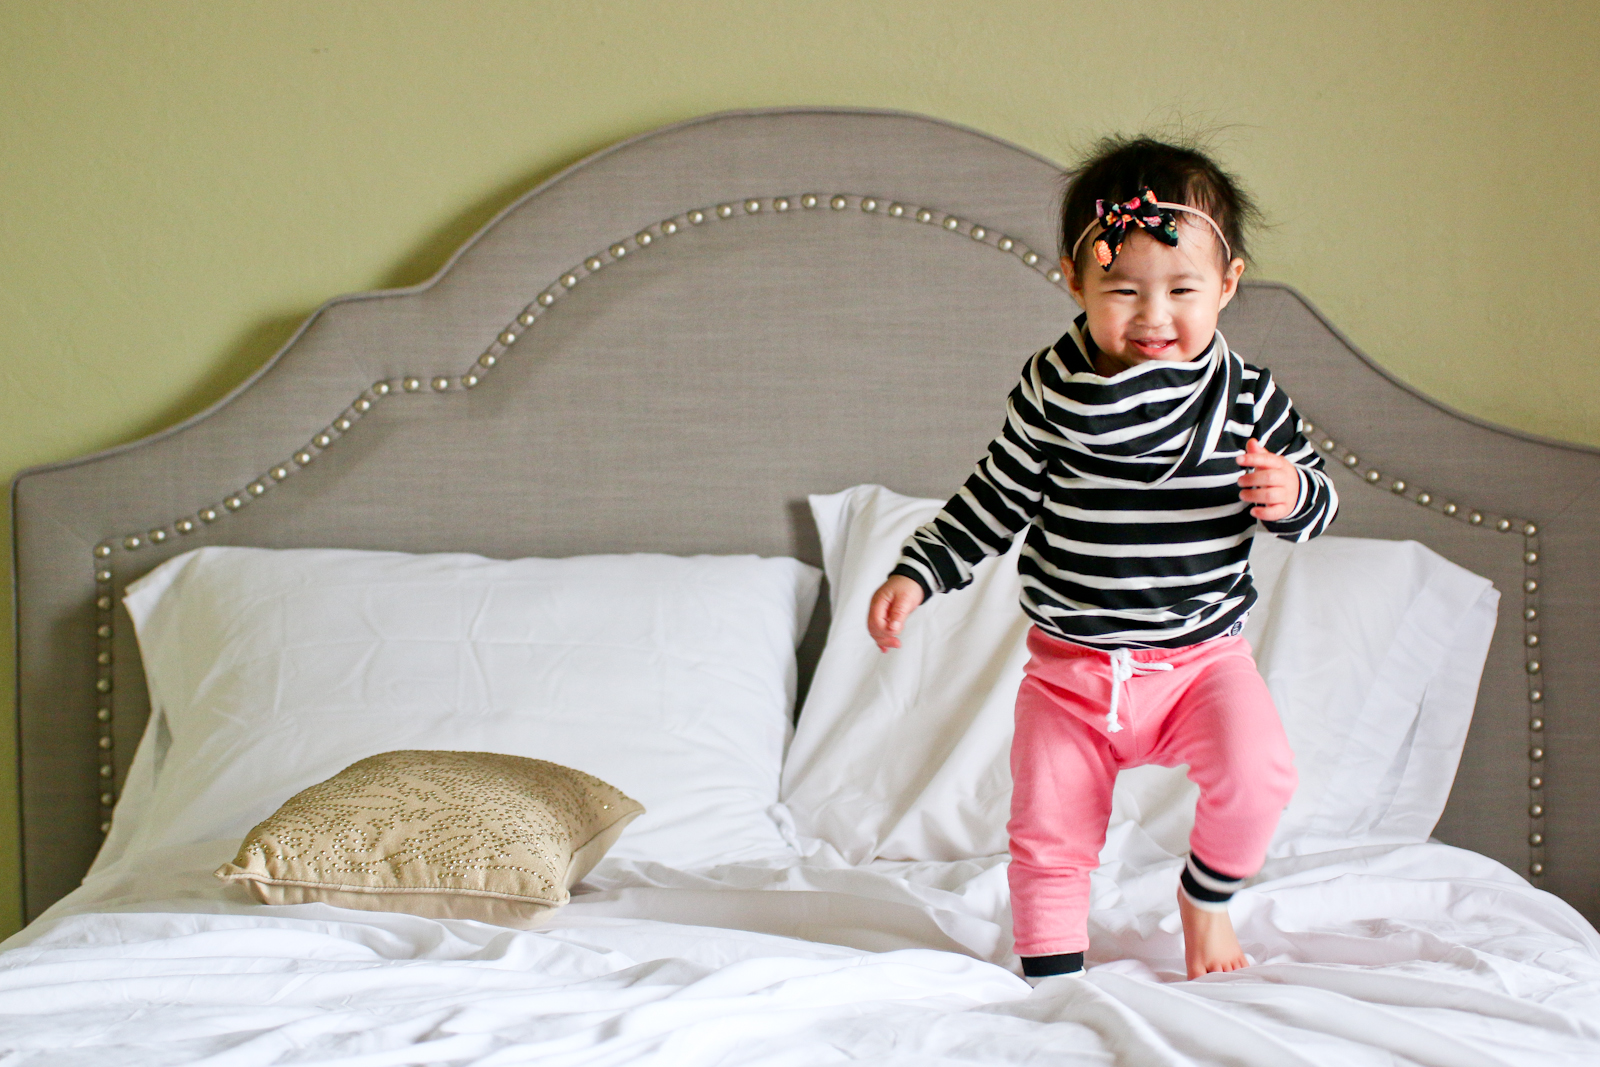 Cool baby clothes from Cute Little Babes